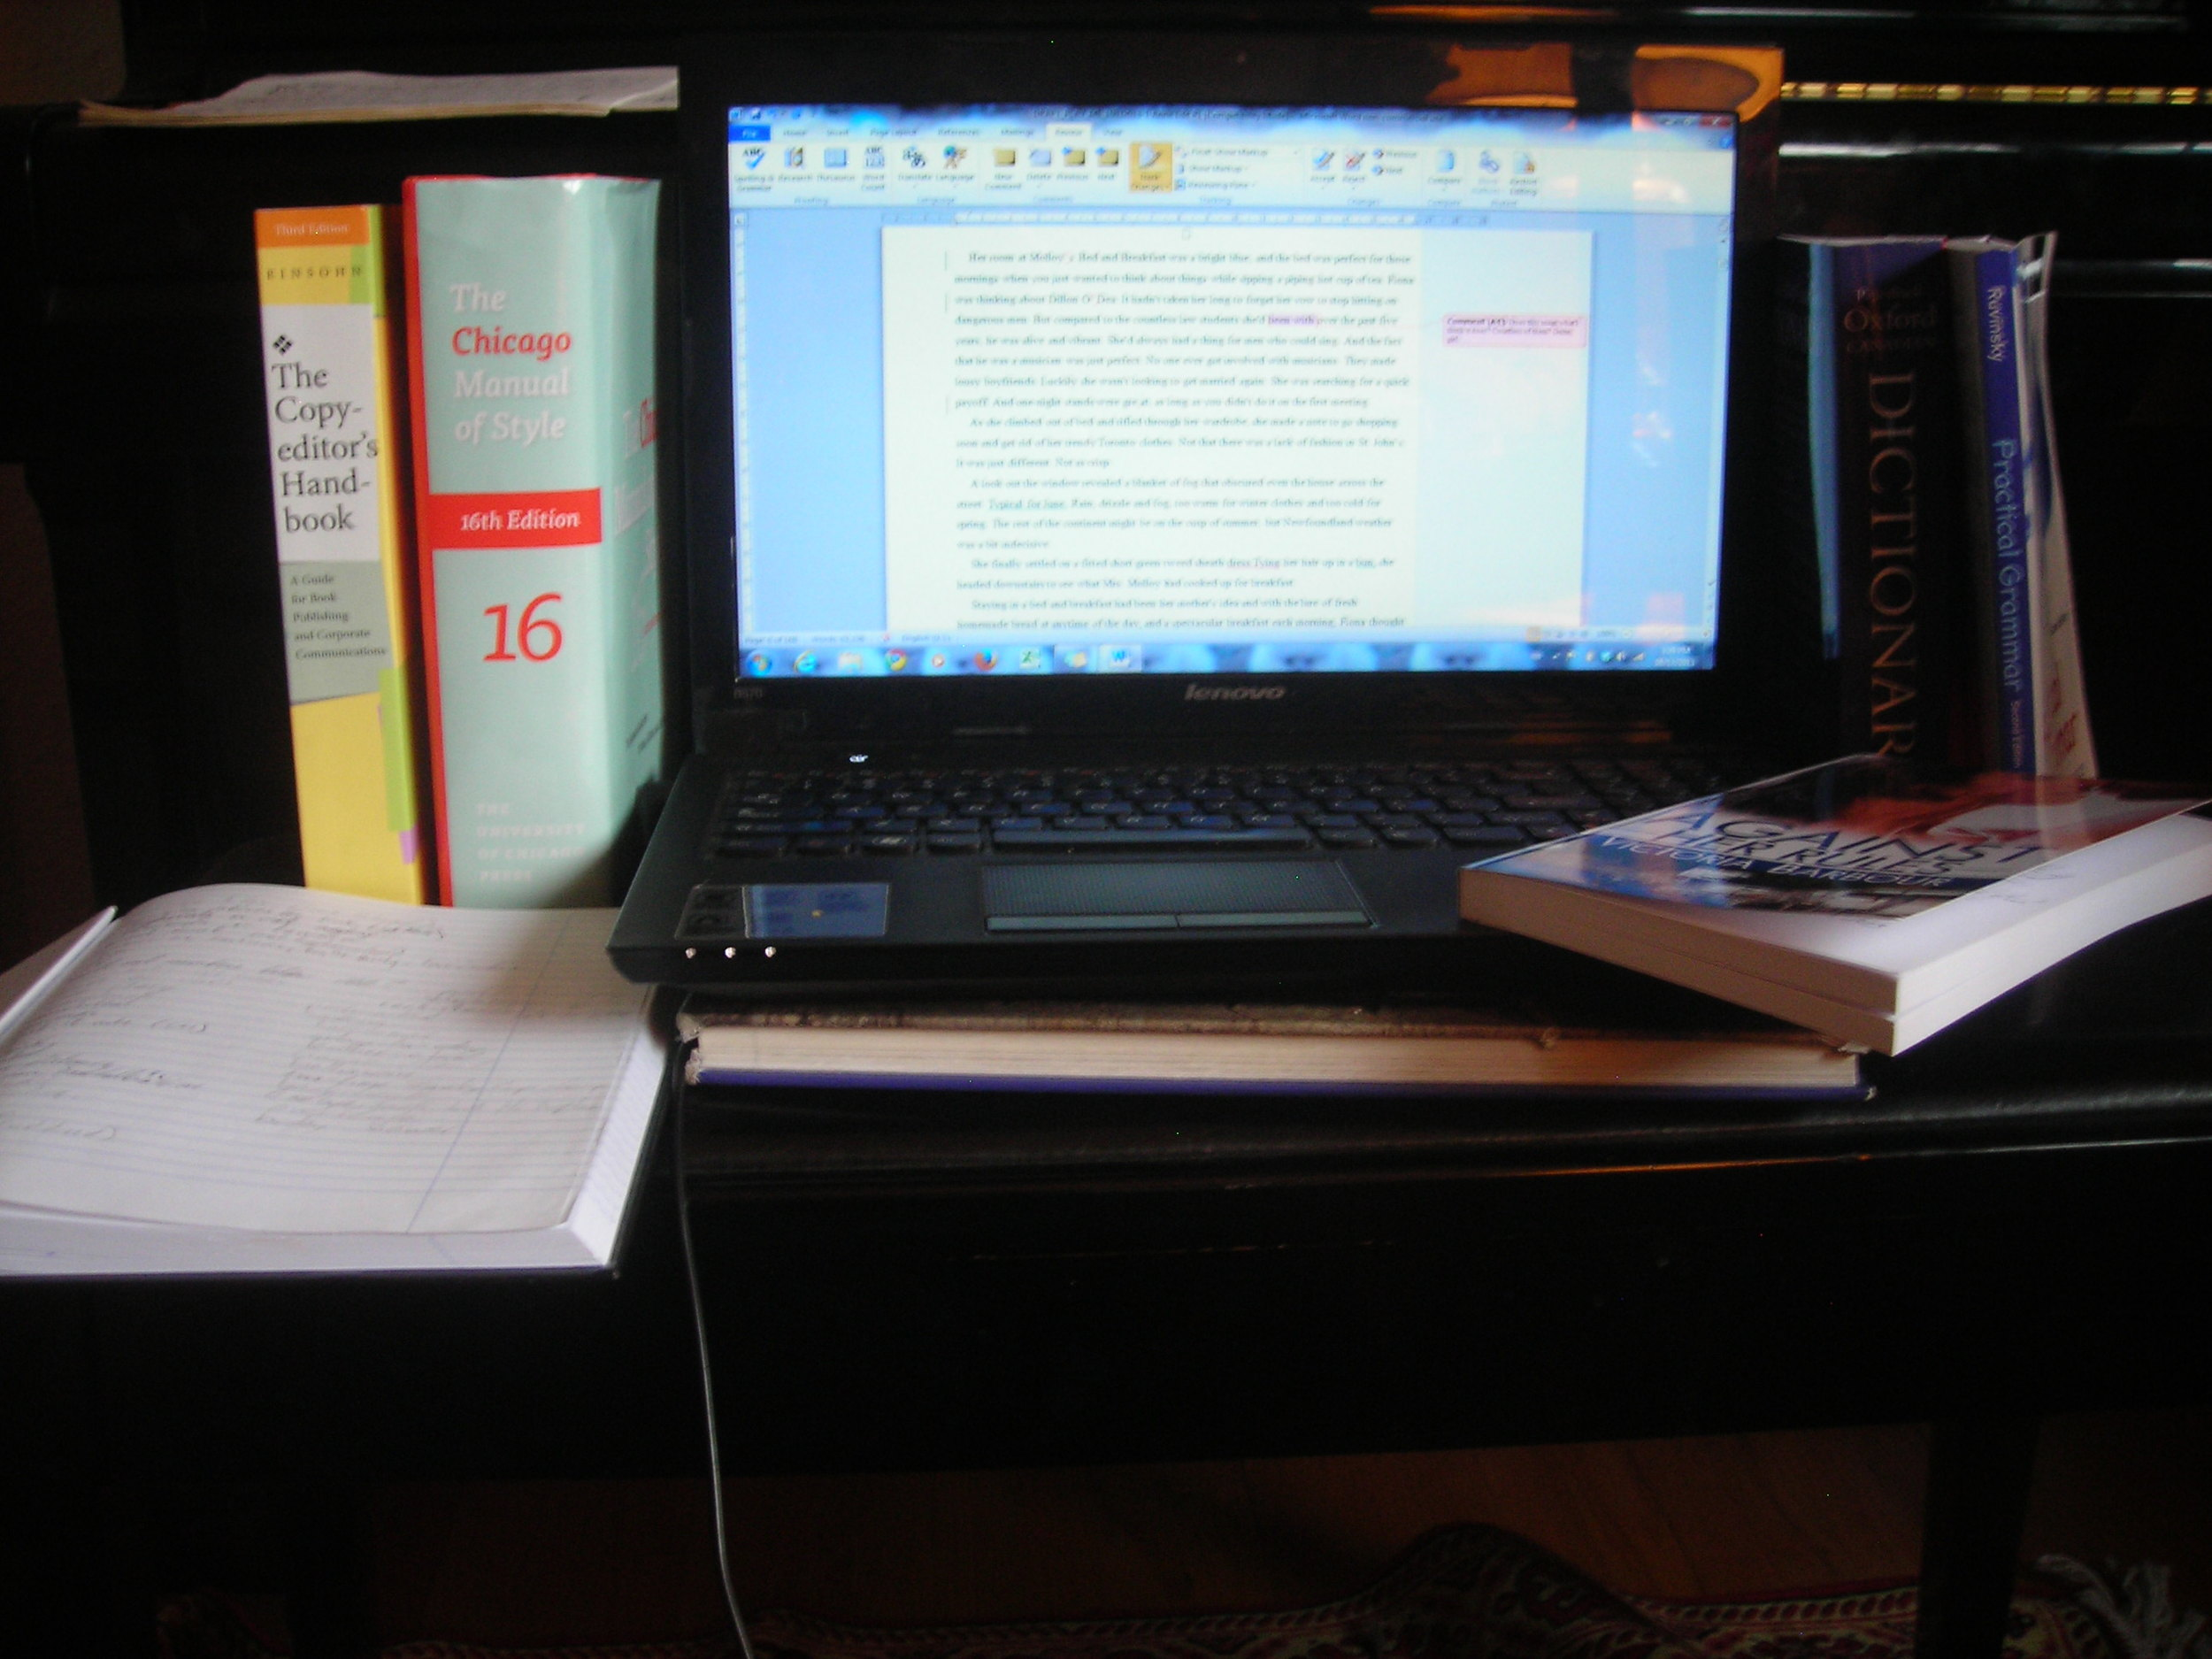 This is a shot Anne sent me ages ago of her work space when she was hard at work on the Heart's Ease series.